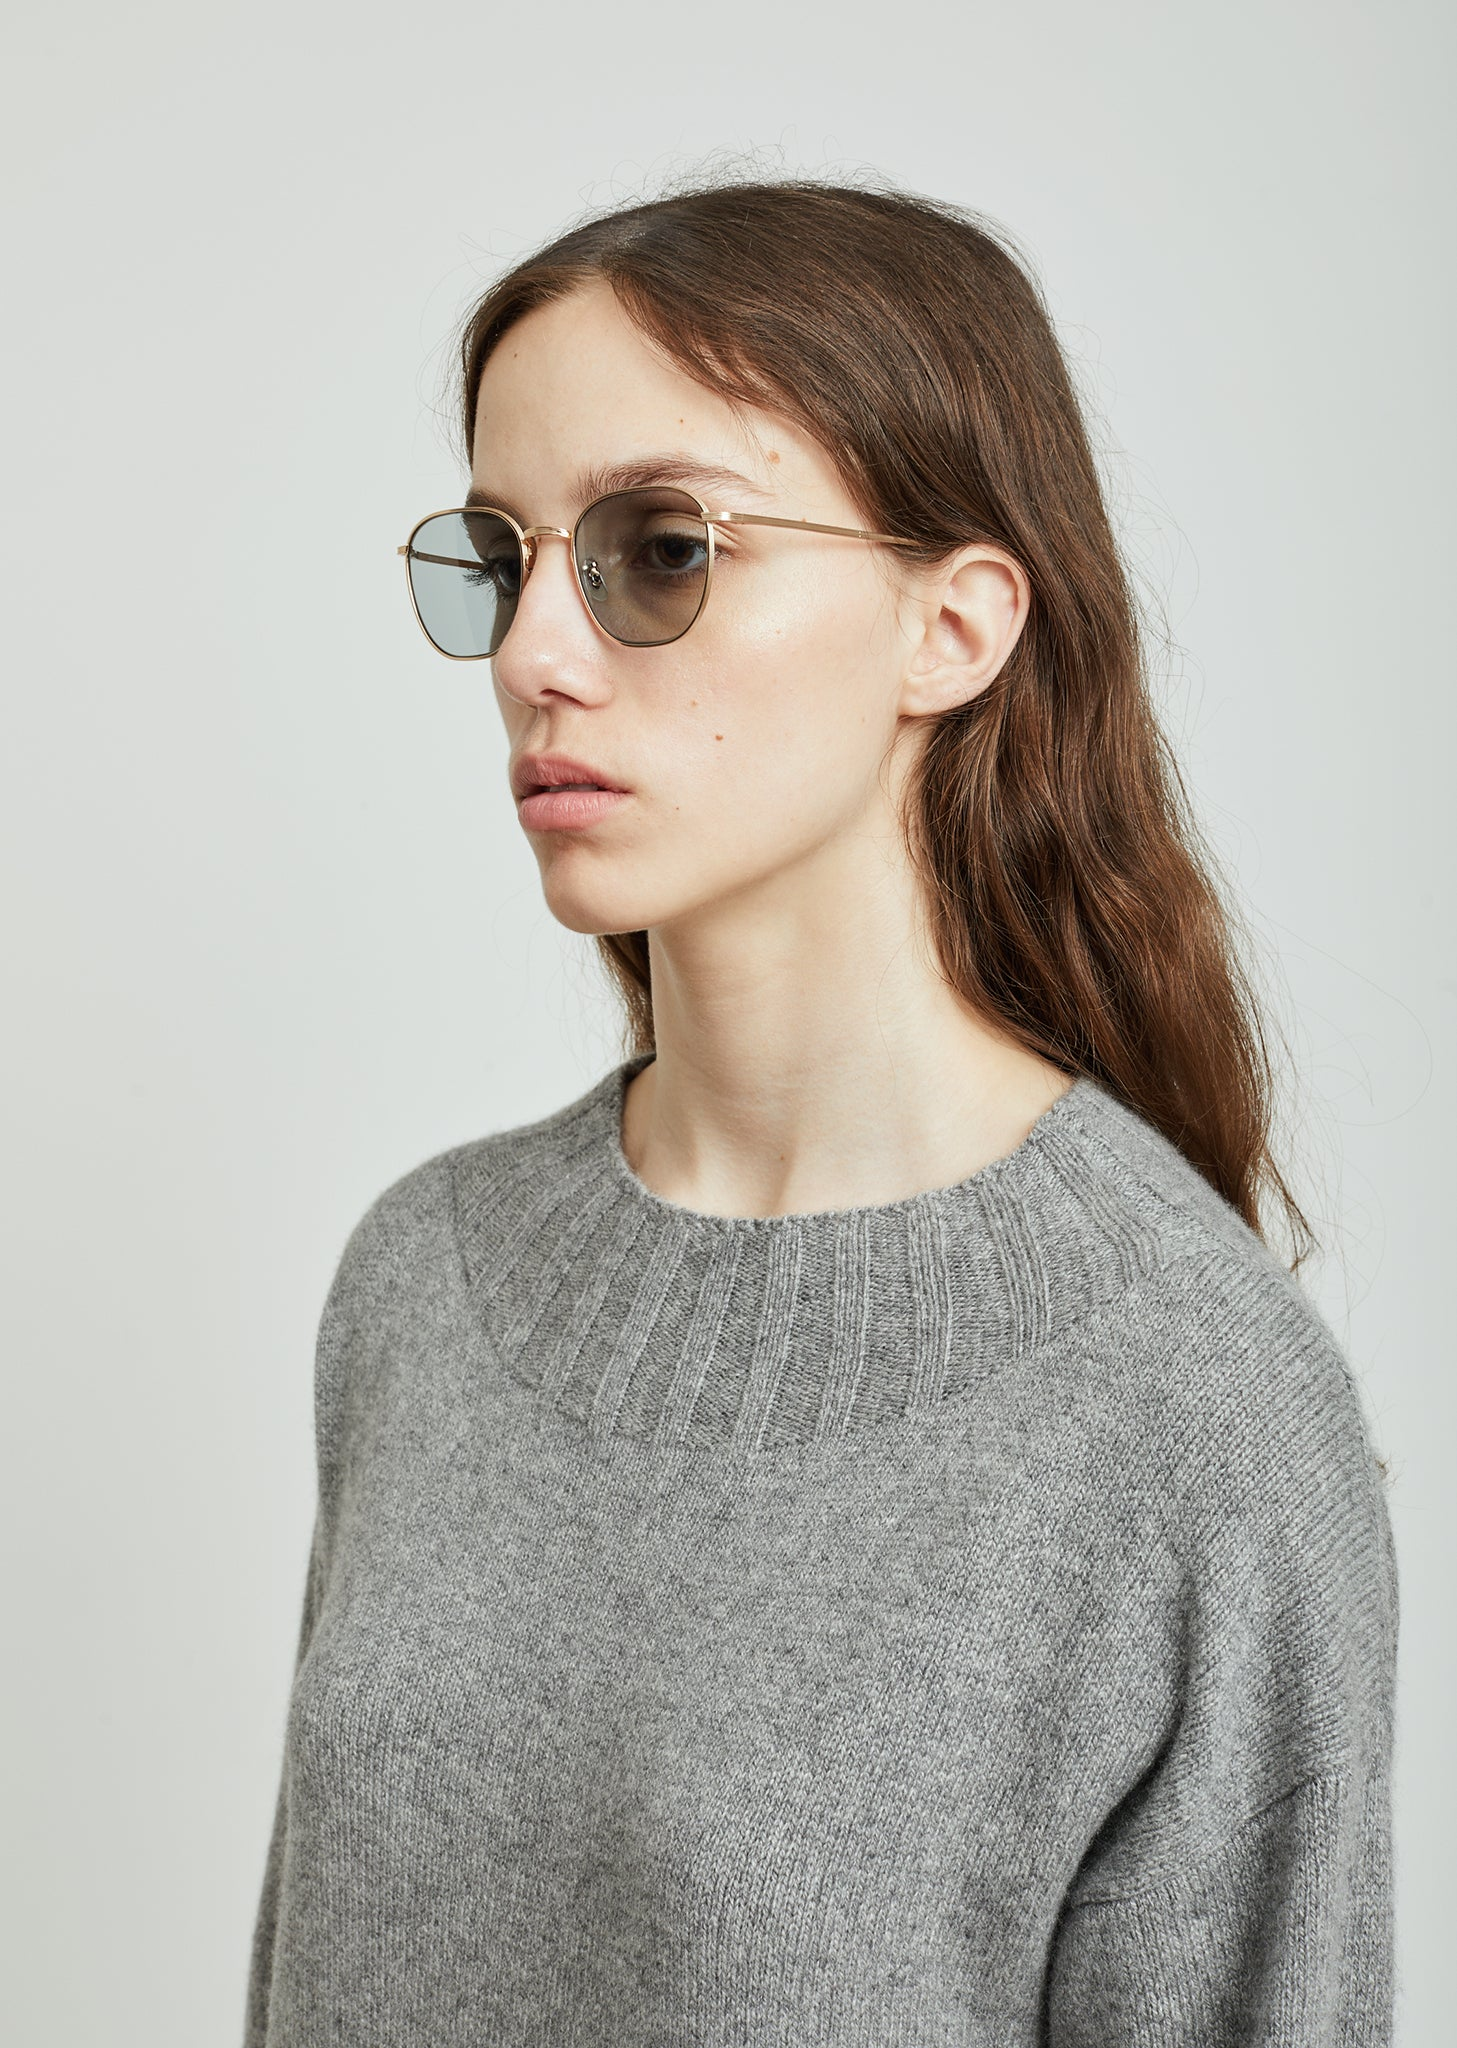 7d44e4ba727 Board Meeting 2 Sunglasses by Oliver Peoples The Row– La Garçonne